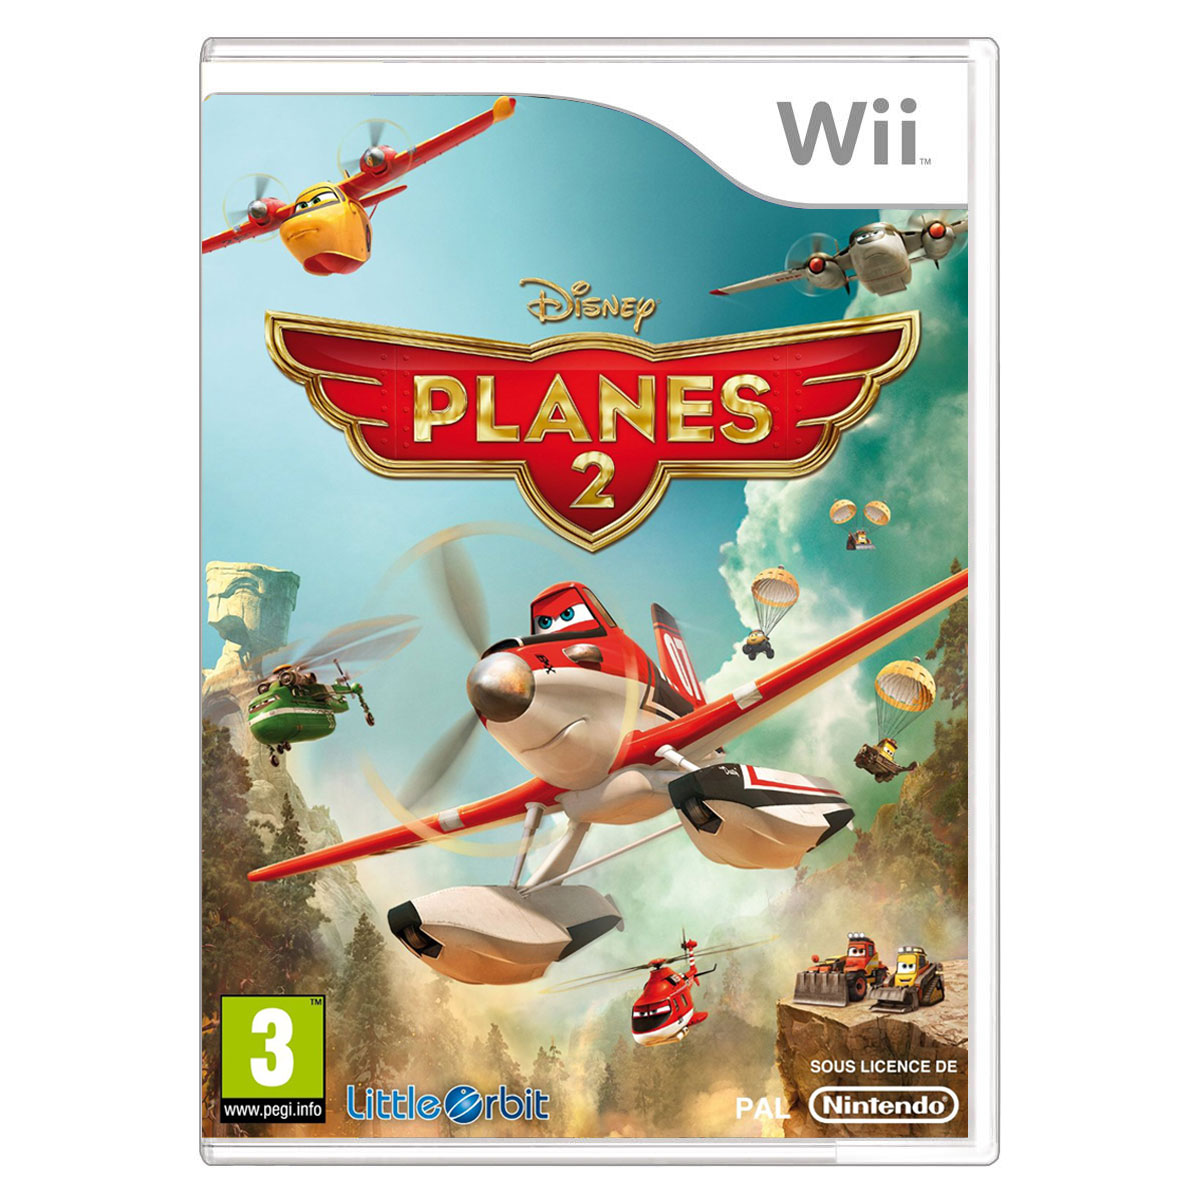 LDLC.com Planes 2 (Wii)  Planes 2 (Wii)